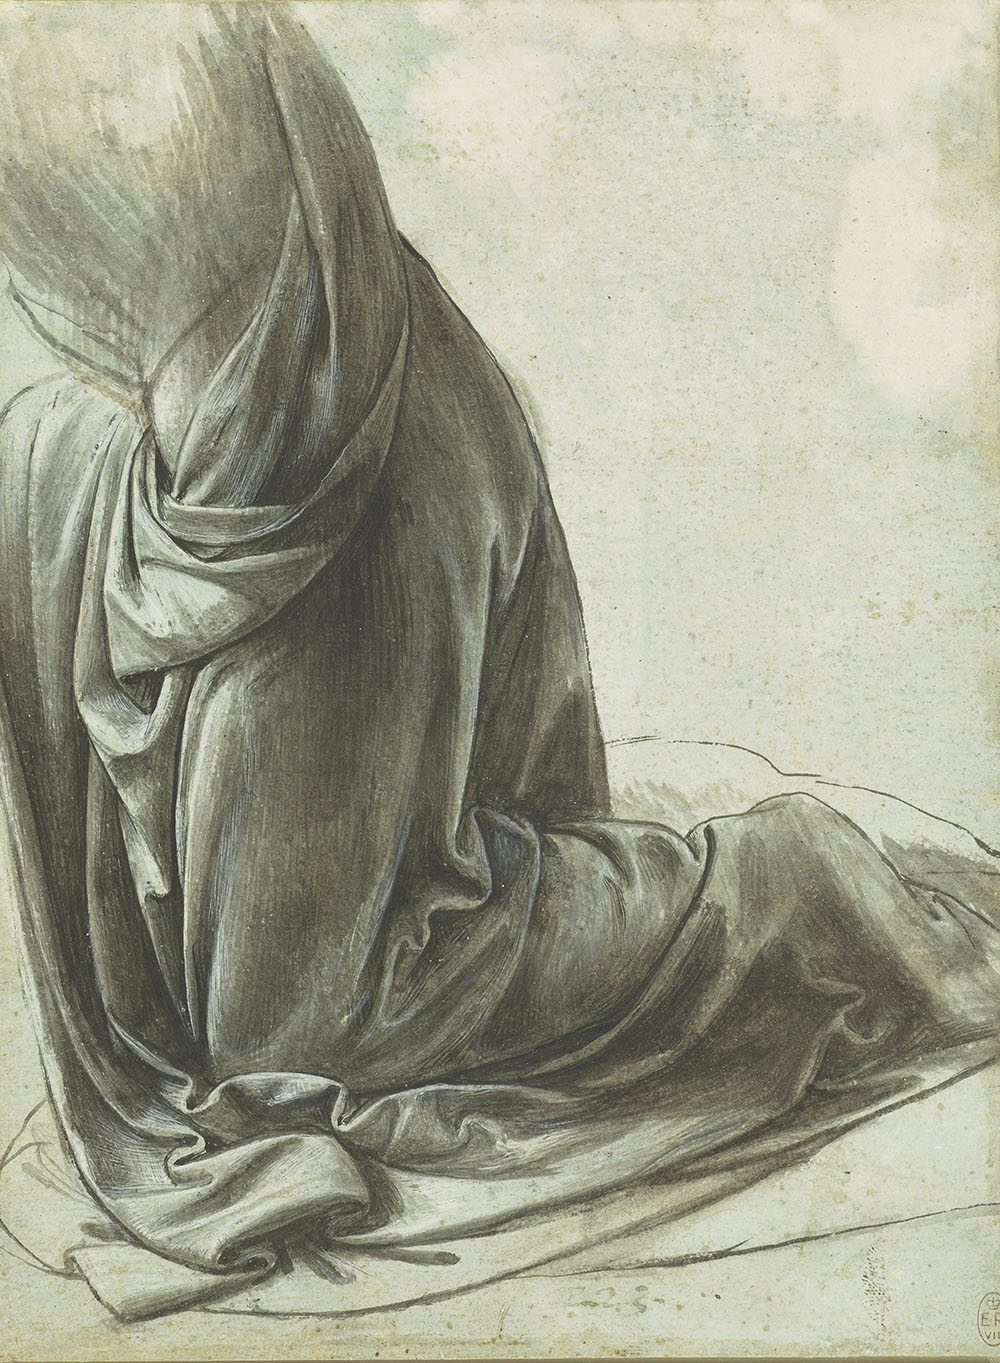 The drapery of a kneeling figure, c1491-94  Leonardo spent his twenties in Florence, but he had moved to Milan by April 1483, when he signed a contract to paint an altarpiece for the church of San Francesco Grande. The first version of The Virgin of the Rocks (Louvre, Paris) was not delivered, for unknown reasons; instead, Leonardo began a second version (National Gallery, London) in the early 1490s, which, after much legal wrangling, was finally installed in San Francesco in 1508. This is a study for the angel's drapery in the second version. Leonardo probably arranged cloth soaked in dilute plaster over a lay figure, which when dry could be drawn from at leisure – a technique that Leonardo learned during his time in Florence. The pale-blue ground of the paper gives a mid-tone,allowing Leonardo to explore a wide range of modelling using both black ink and white lead paint, applied with a brush.  Sunderland Museum & Winter Gardens, £2.50, 10% off in shop with National Art Pass    - Royal Collection Trust © Her Majesty Queen Elizabeth II 2018.